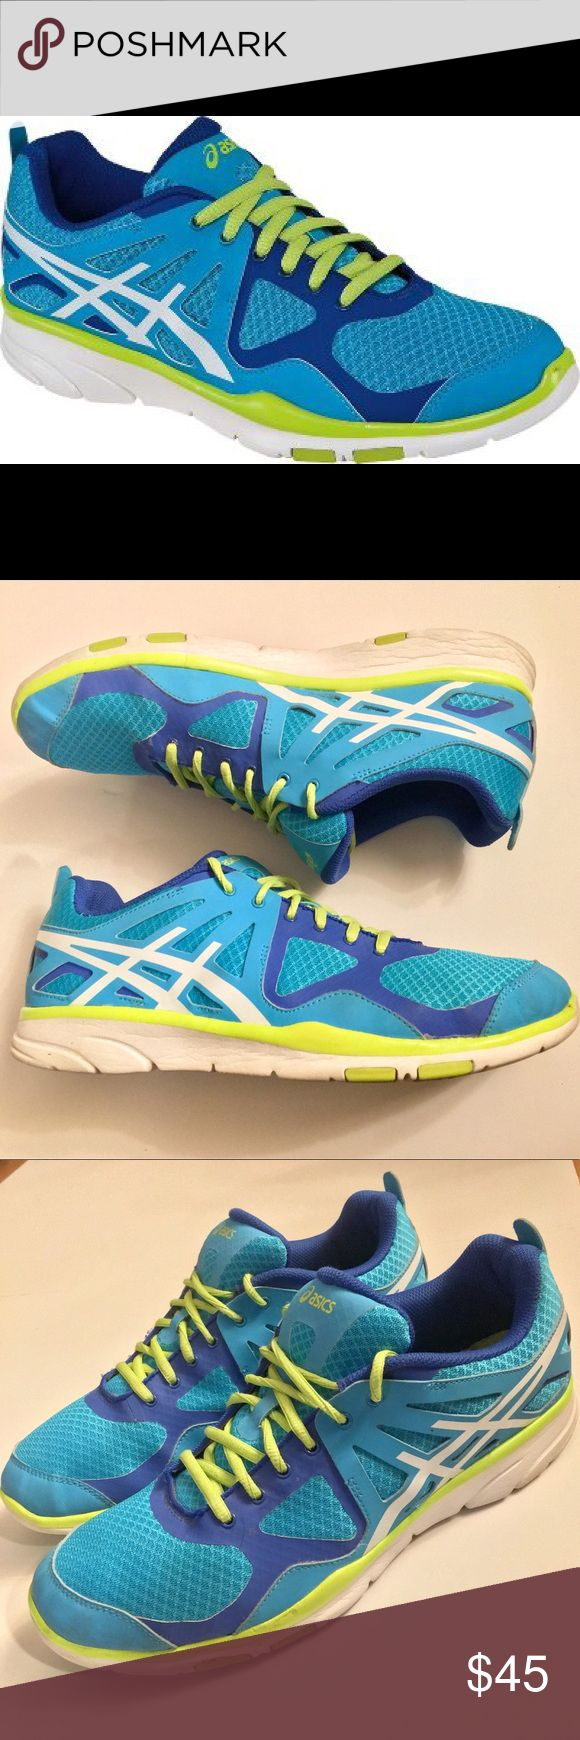 ASICS Women's GEL sustain TR cross training shoes Lightweight, supportive construction, crucial cushioning and flexibility deliver performance  Rearfoot GEL cushioning system AHAR+ outsole  Synthetic and mesh   Excellent used condition Asics Shoes Athletic Shoes